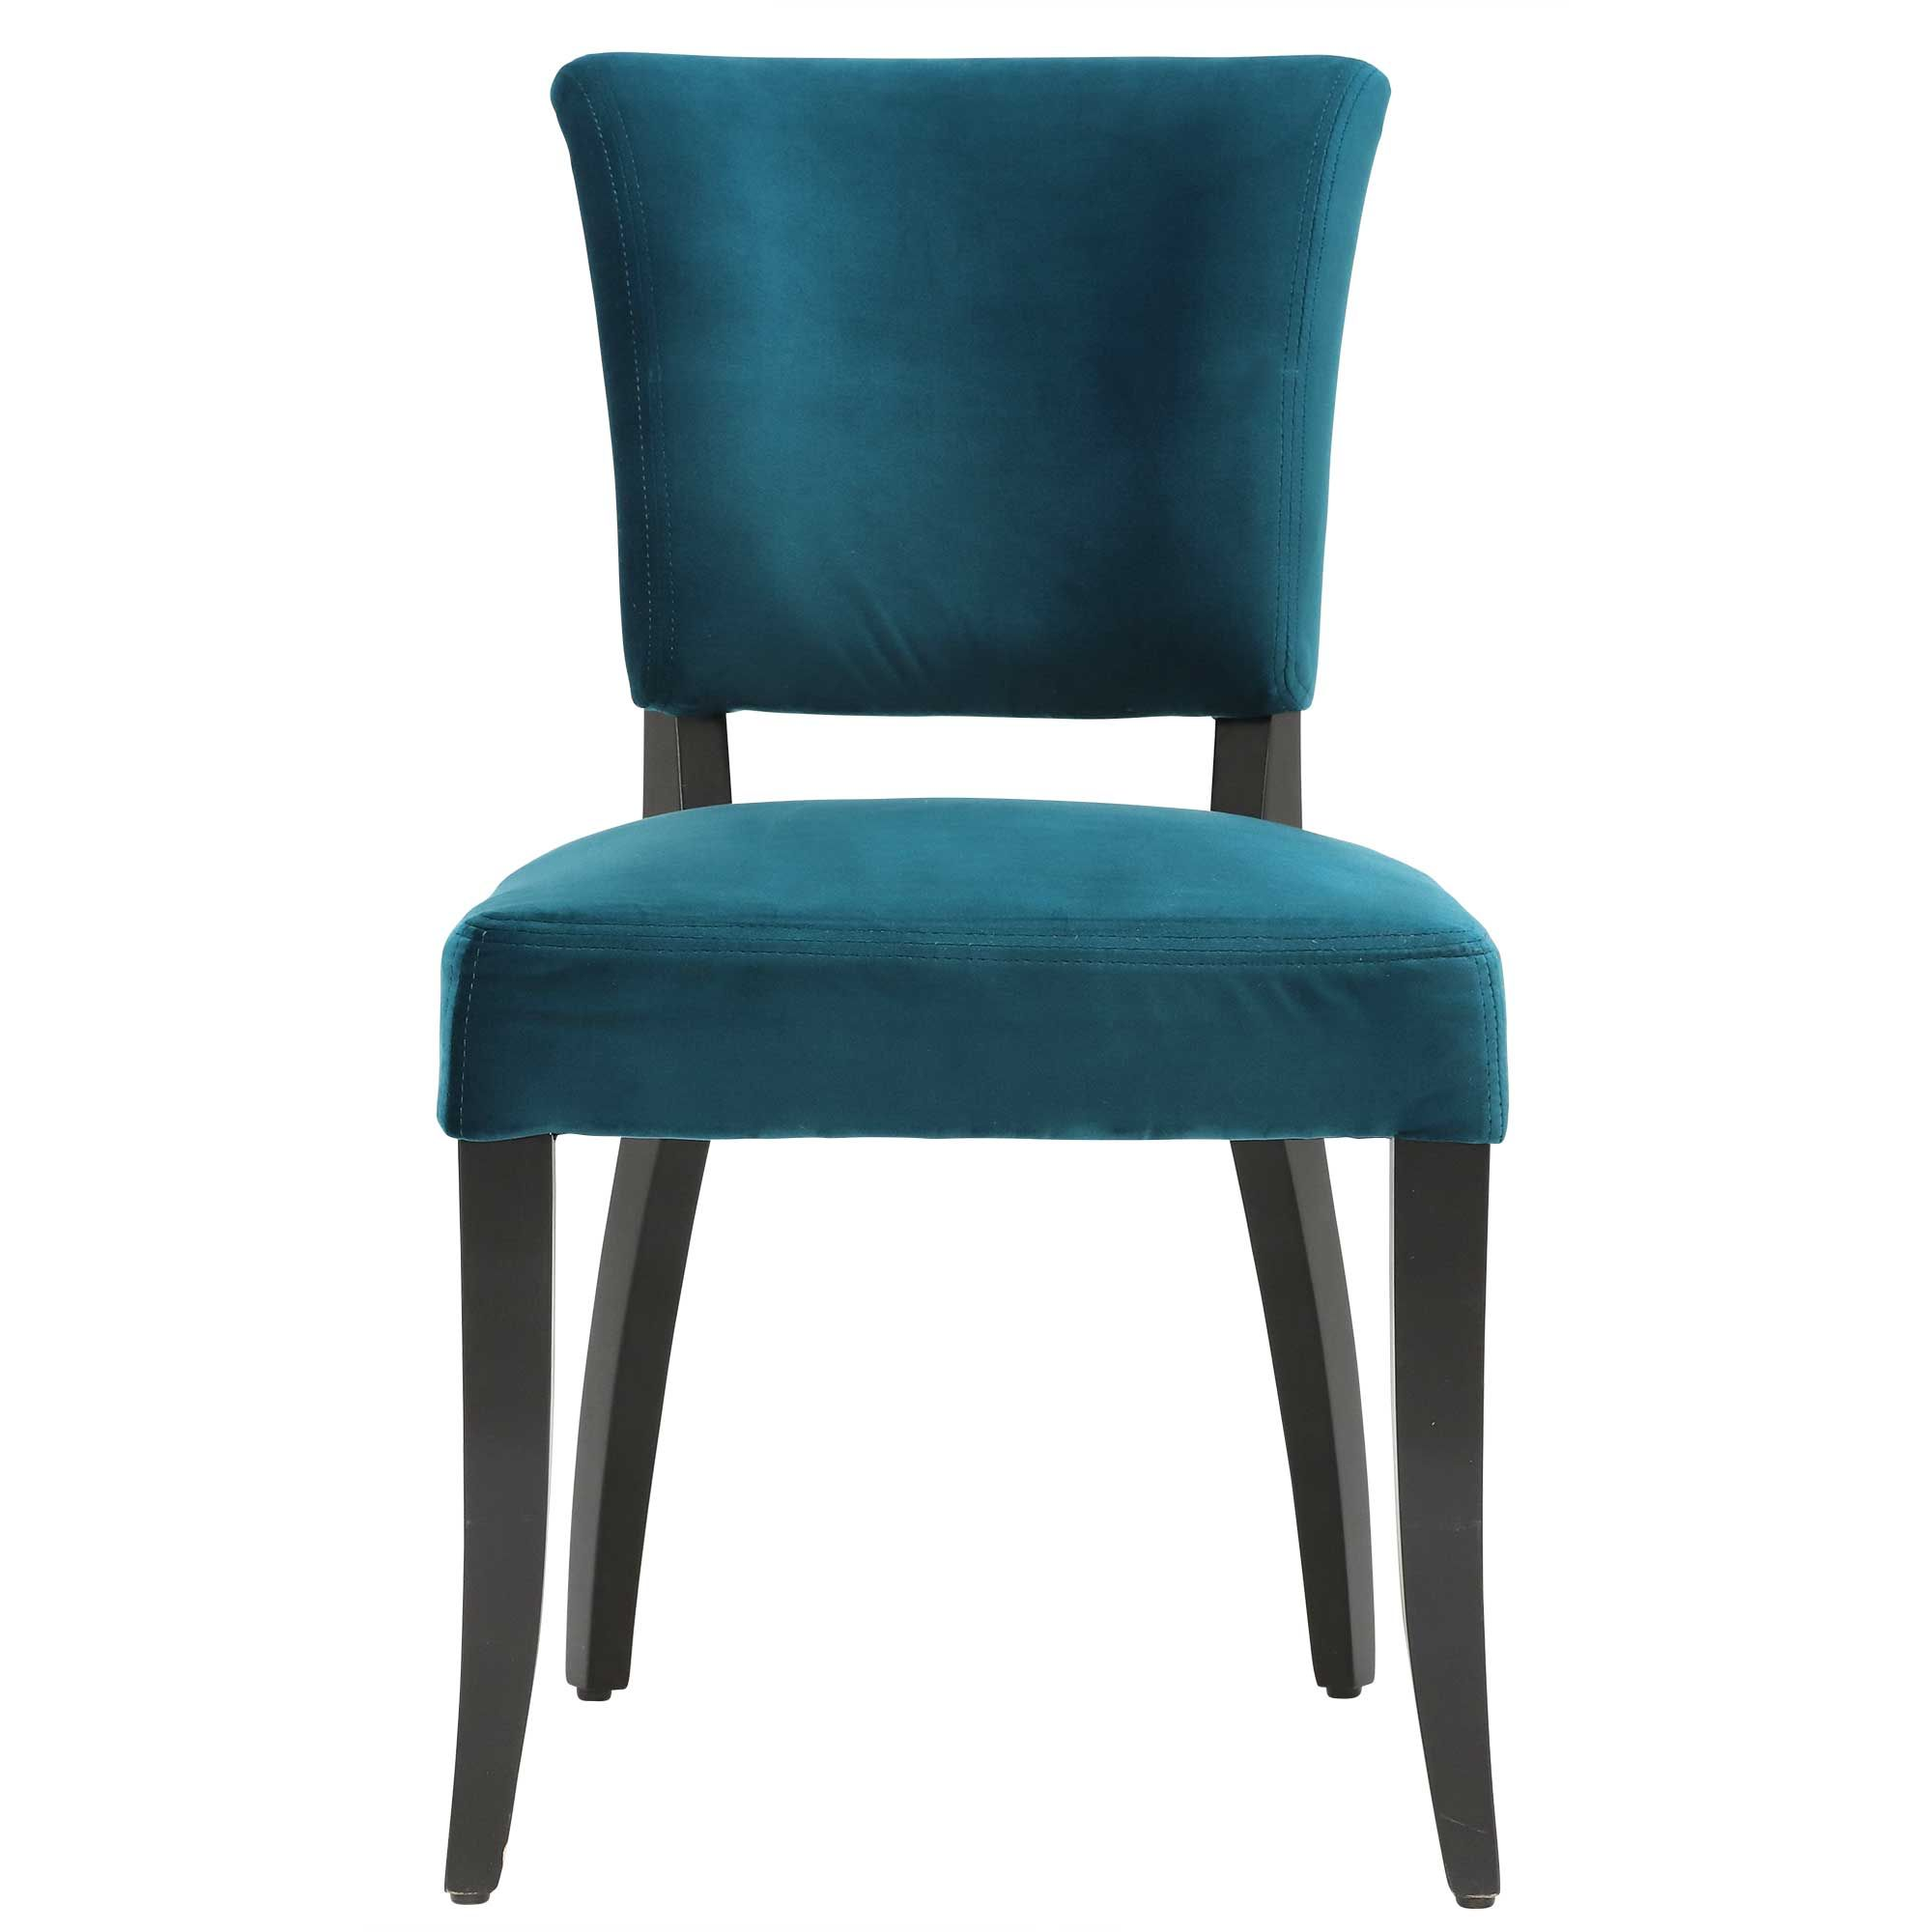 Miraculous Timothy Oulton Mimi Velvet Dining Chair Teal Dining Gmtry Best Dining Table And Chair Ideas Images Gmtryco